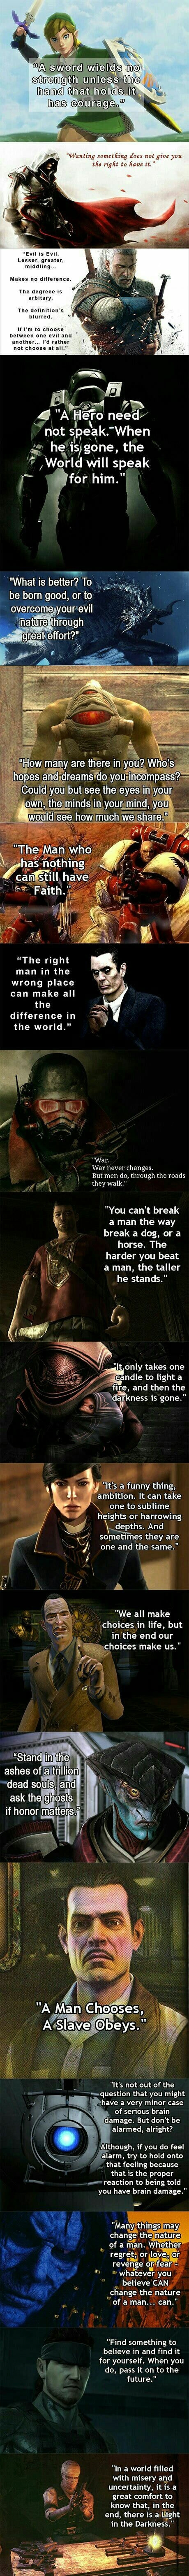 Quotes from video games